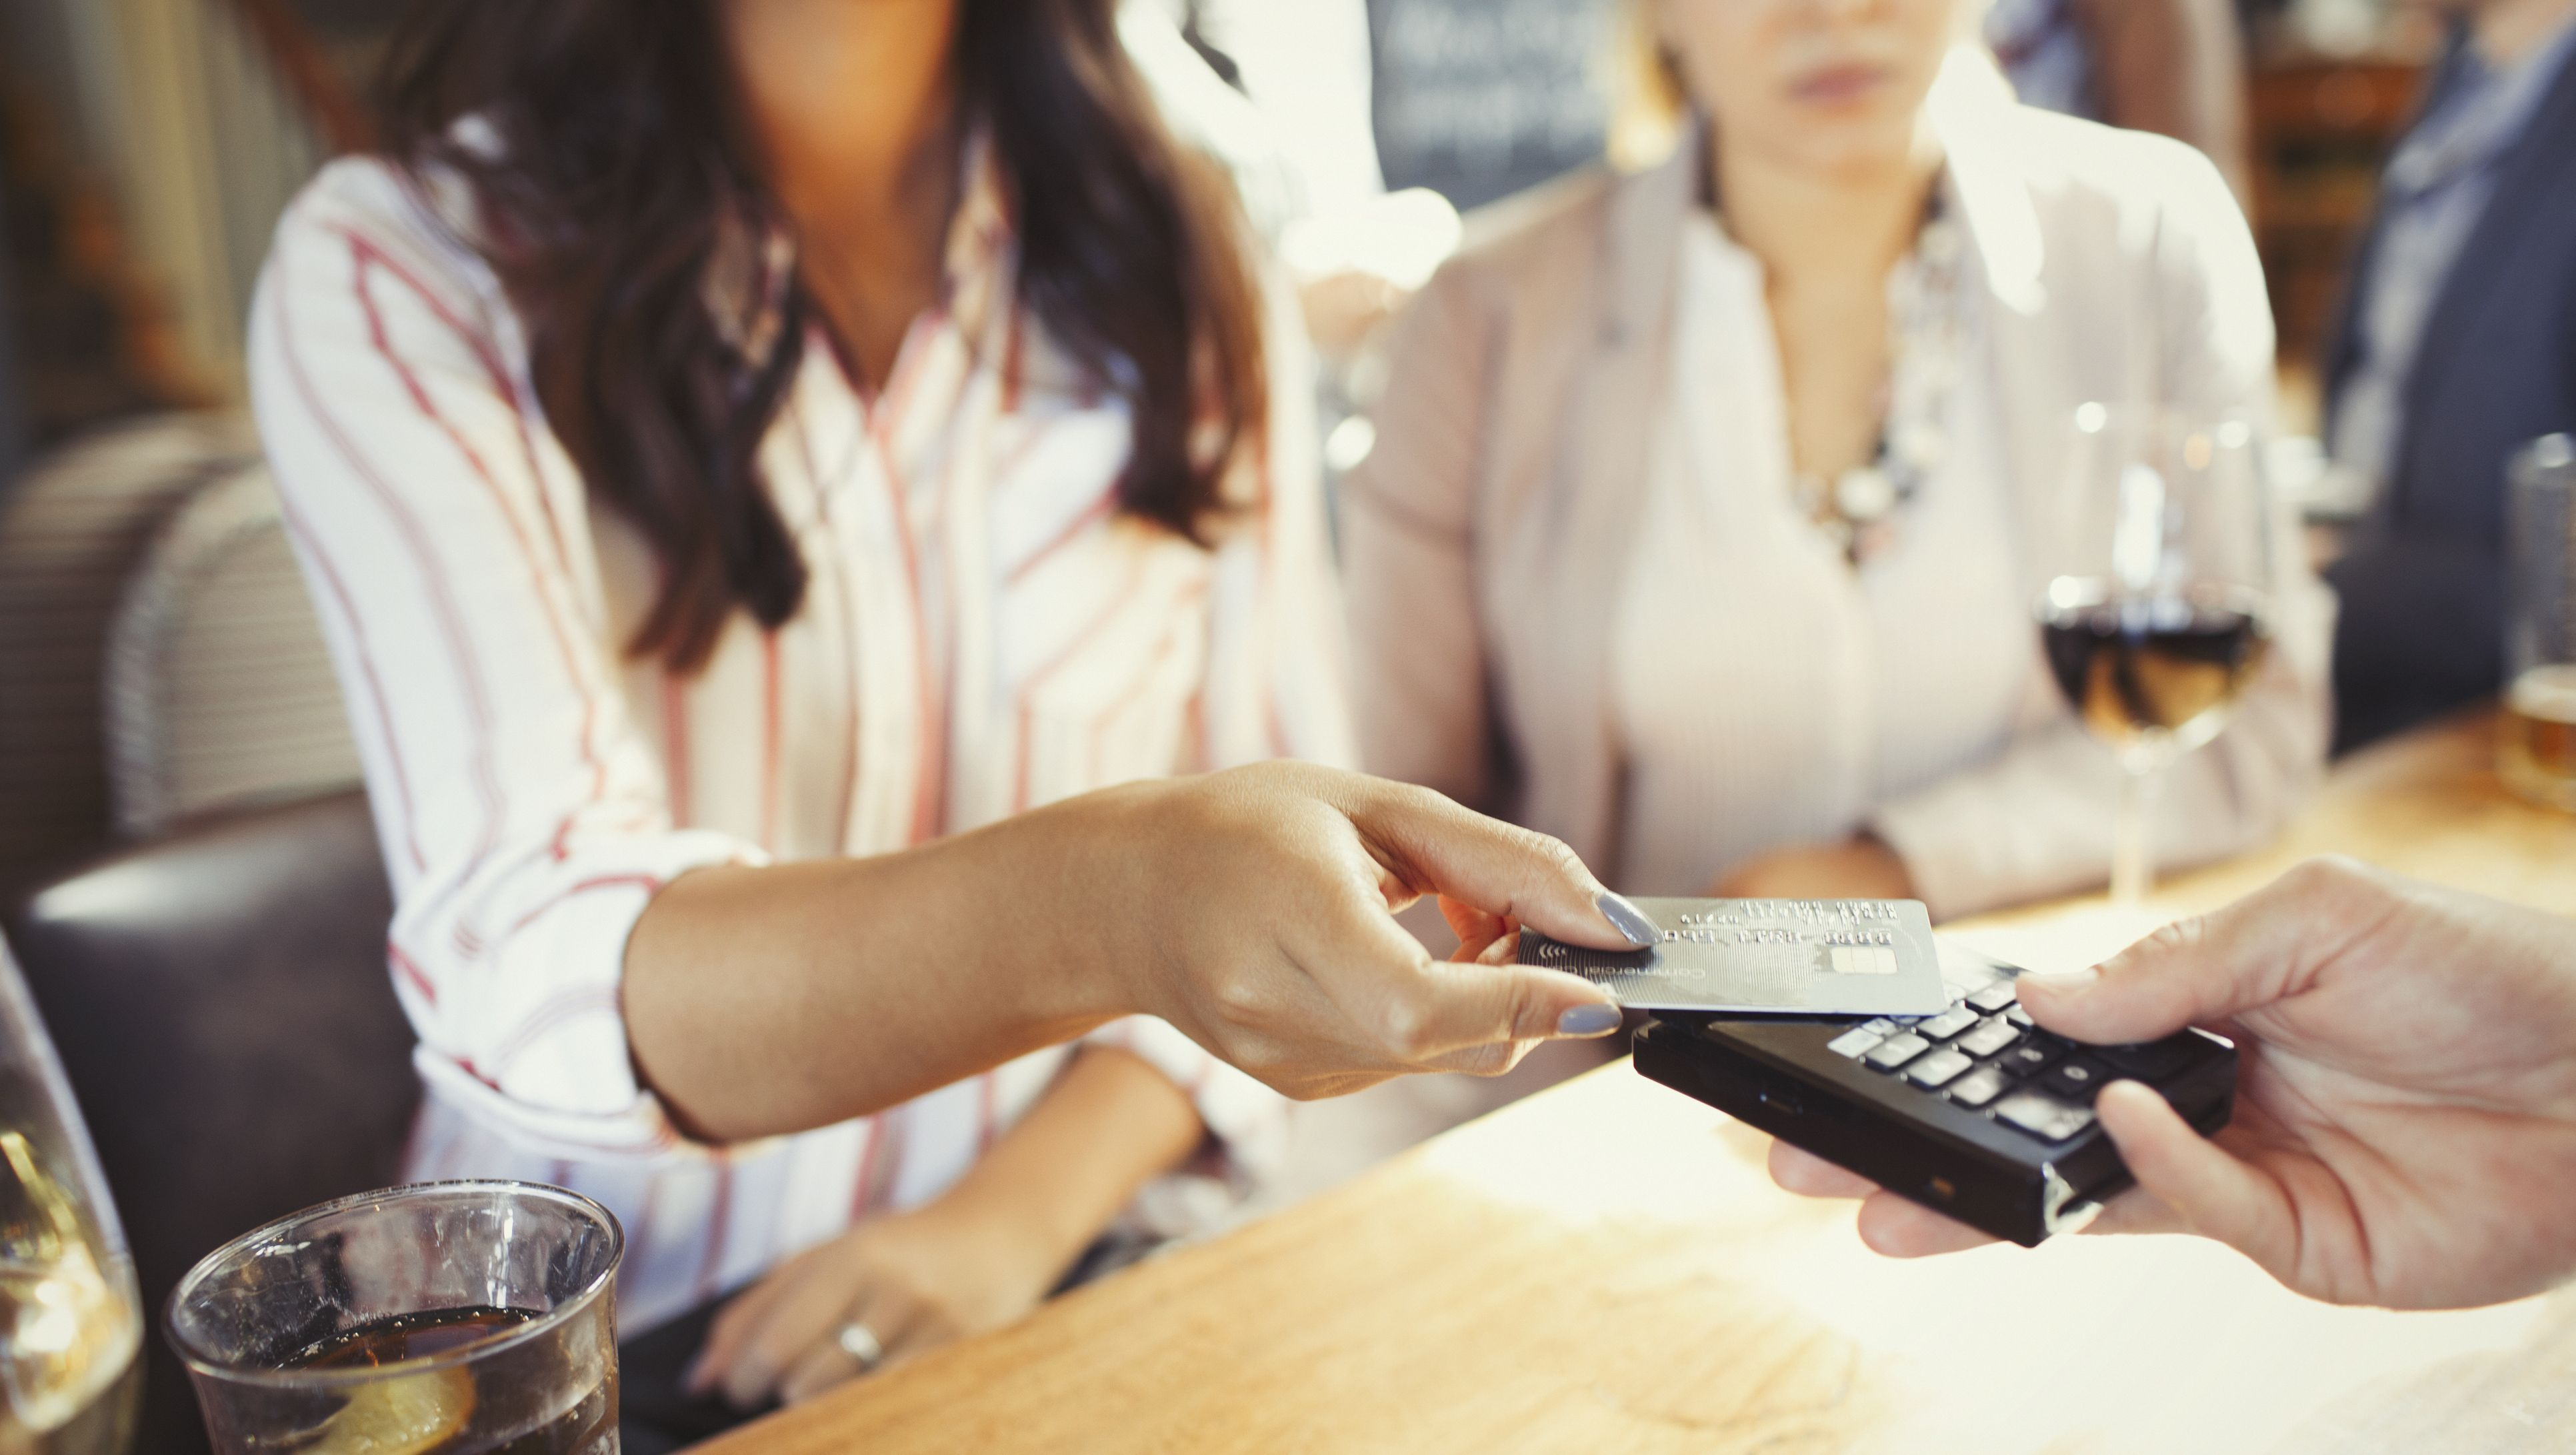 Woman paying bartender with credit card contactless payment at bar